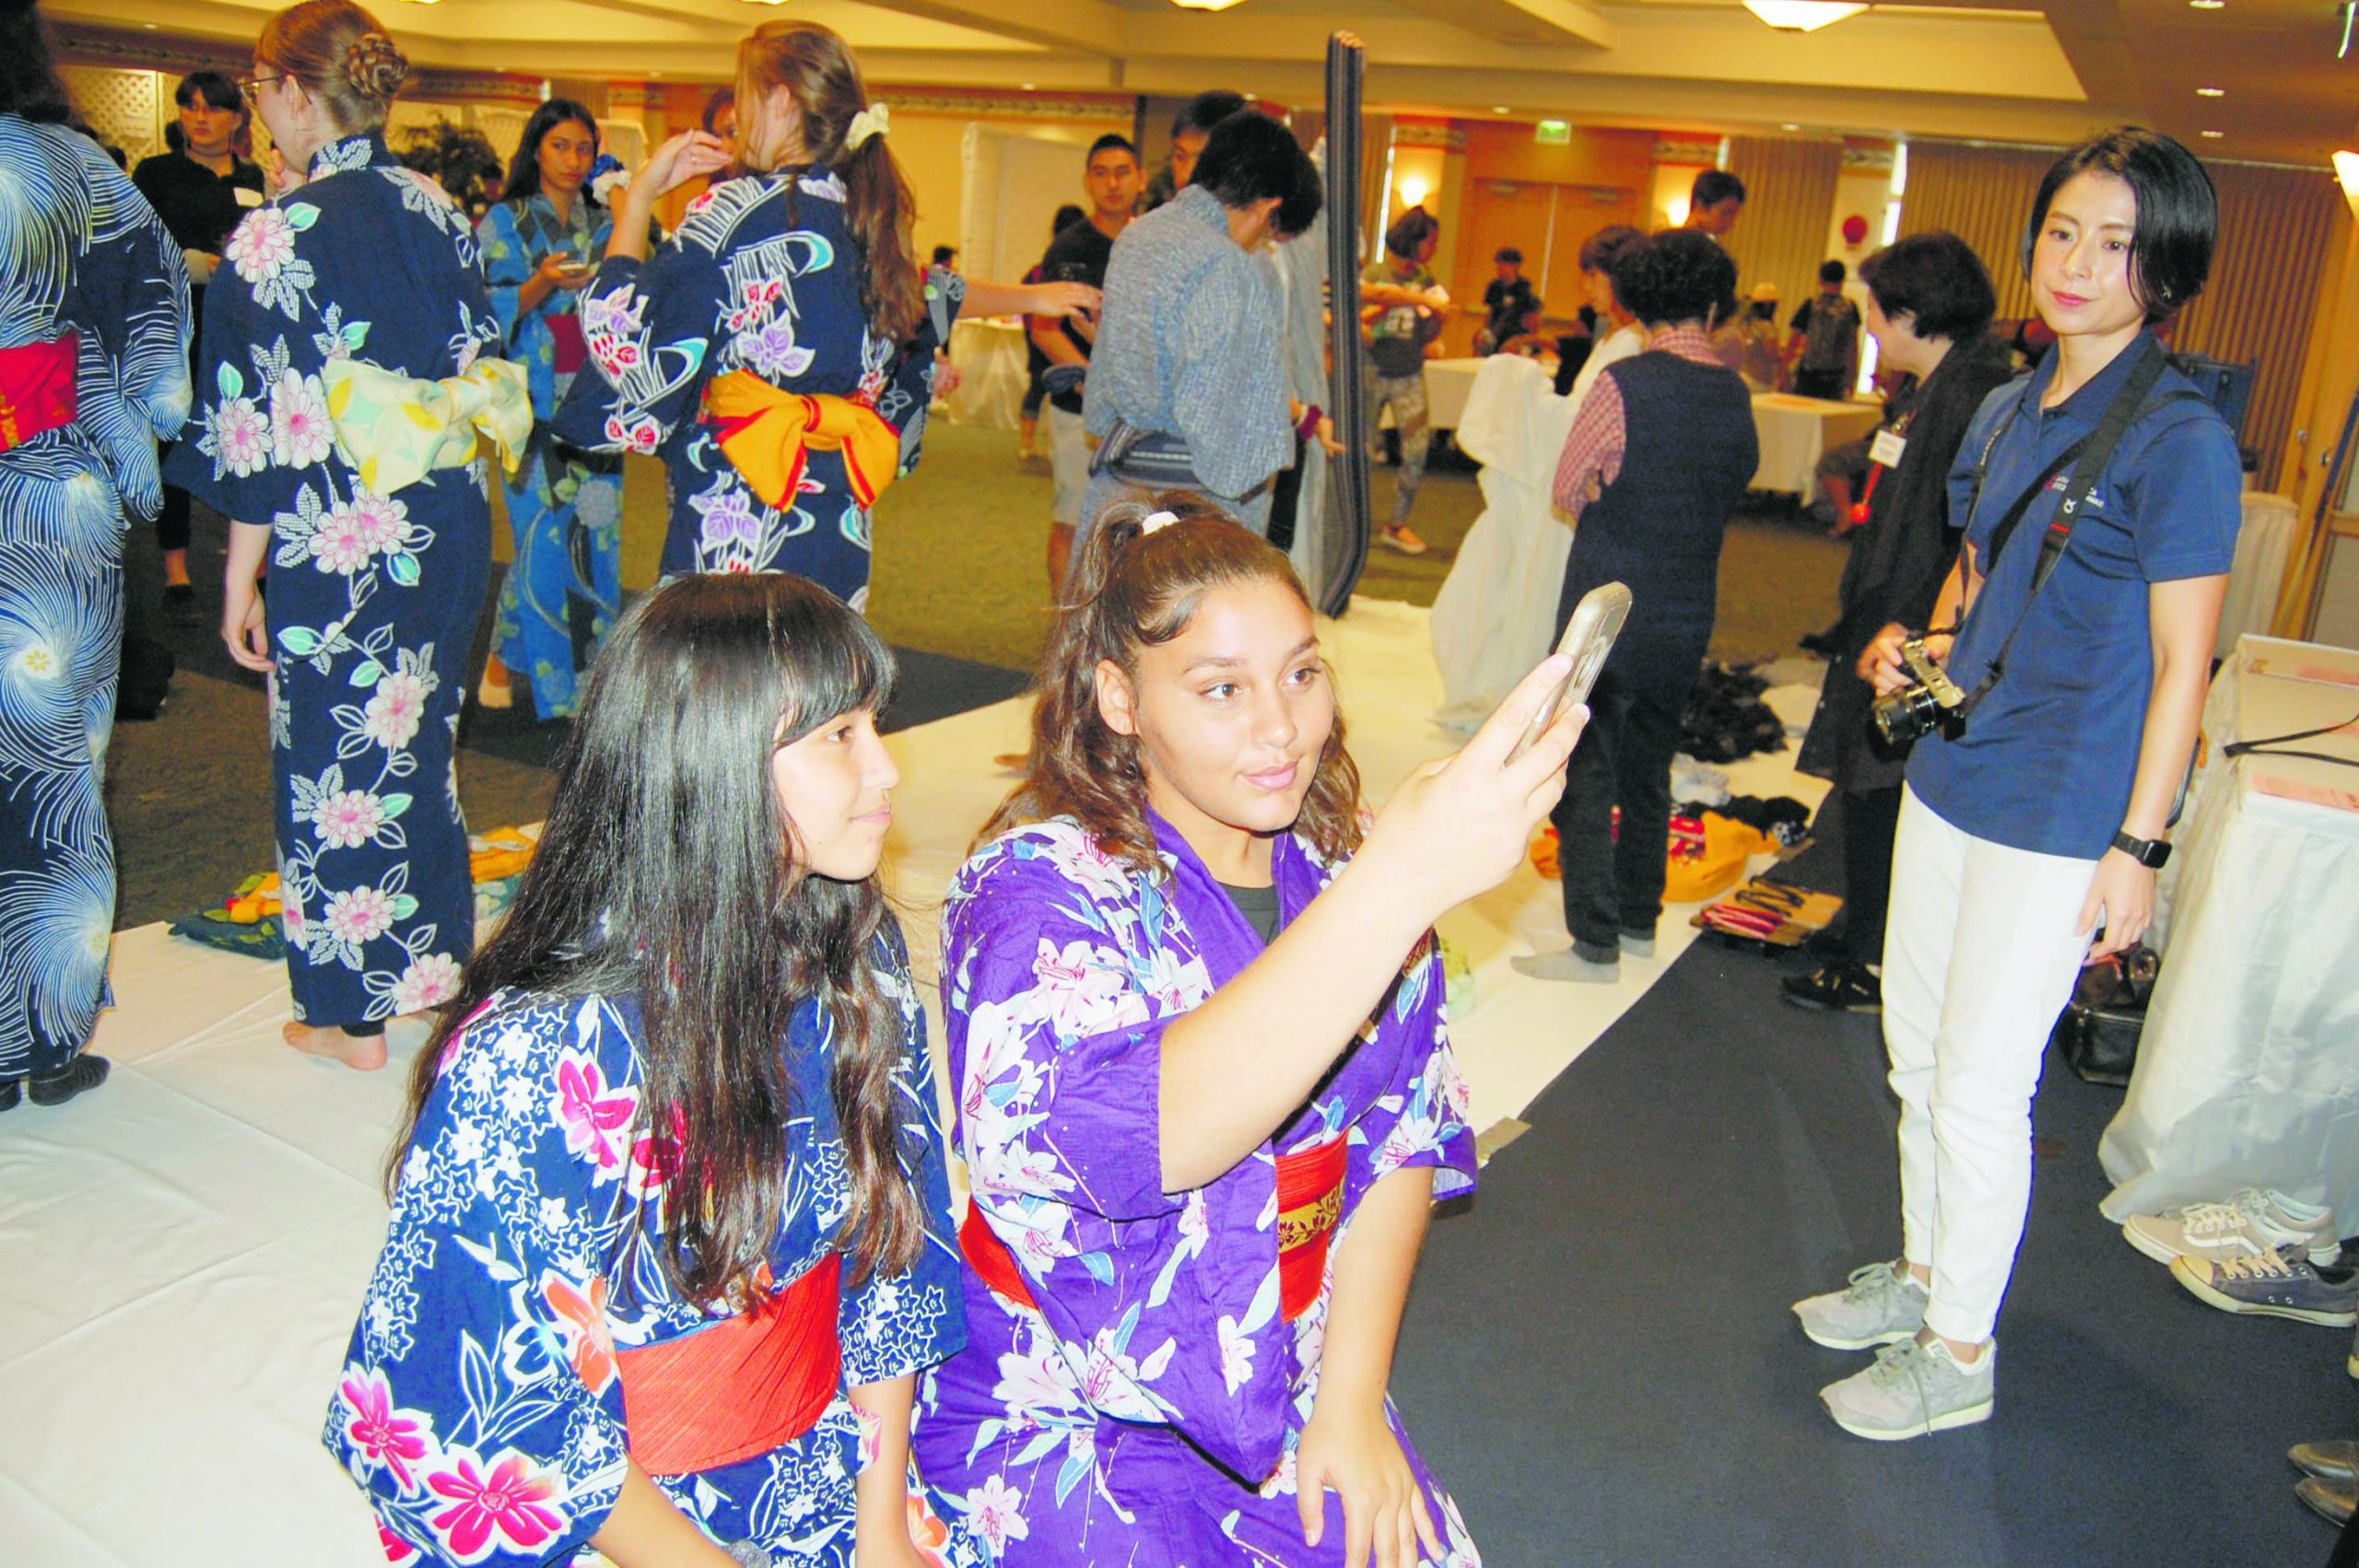 Kaililauokekoa Asuncion (left) and Ashawnaleigh Davis from Moloka'i High School take a selfie after getting dressed in kimono. Since 1993, over 6,700 students from 65 different schools have participated in JASH's Japan Day.